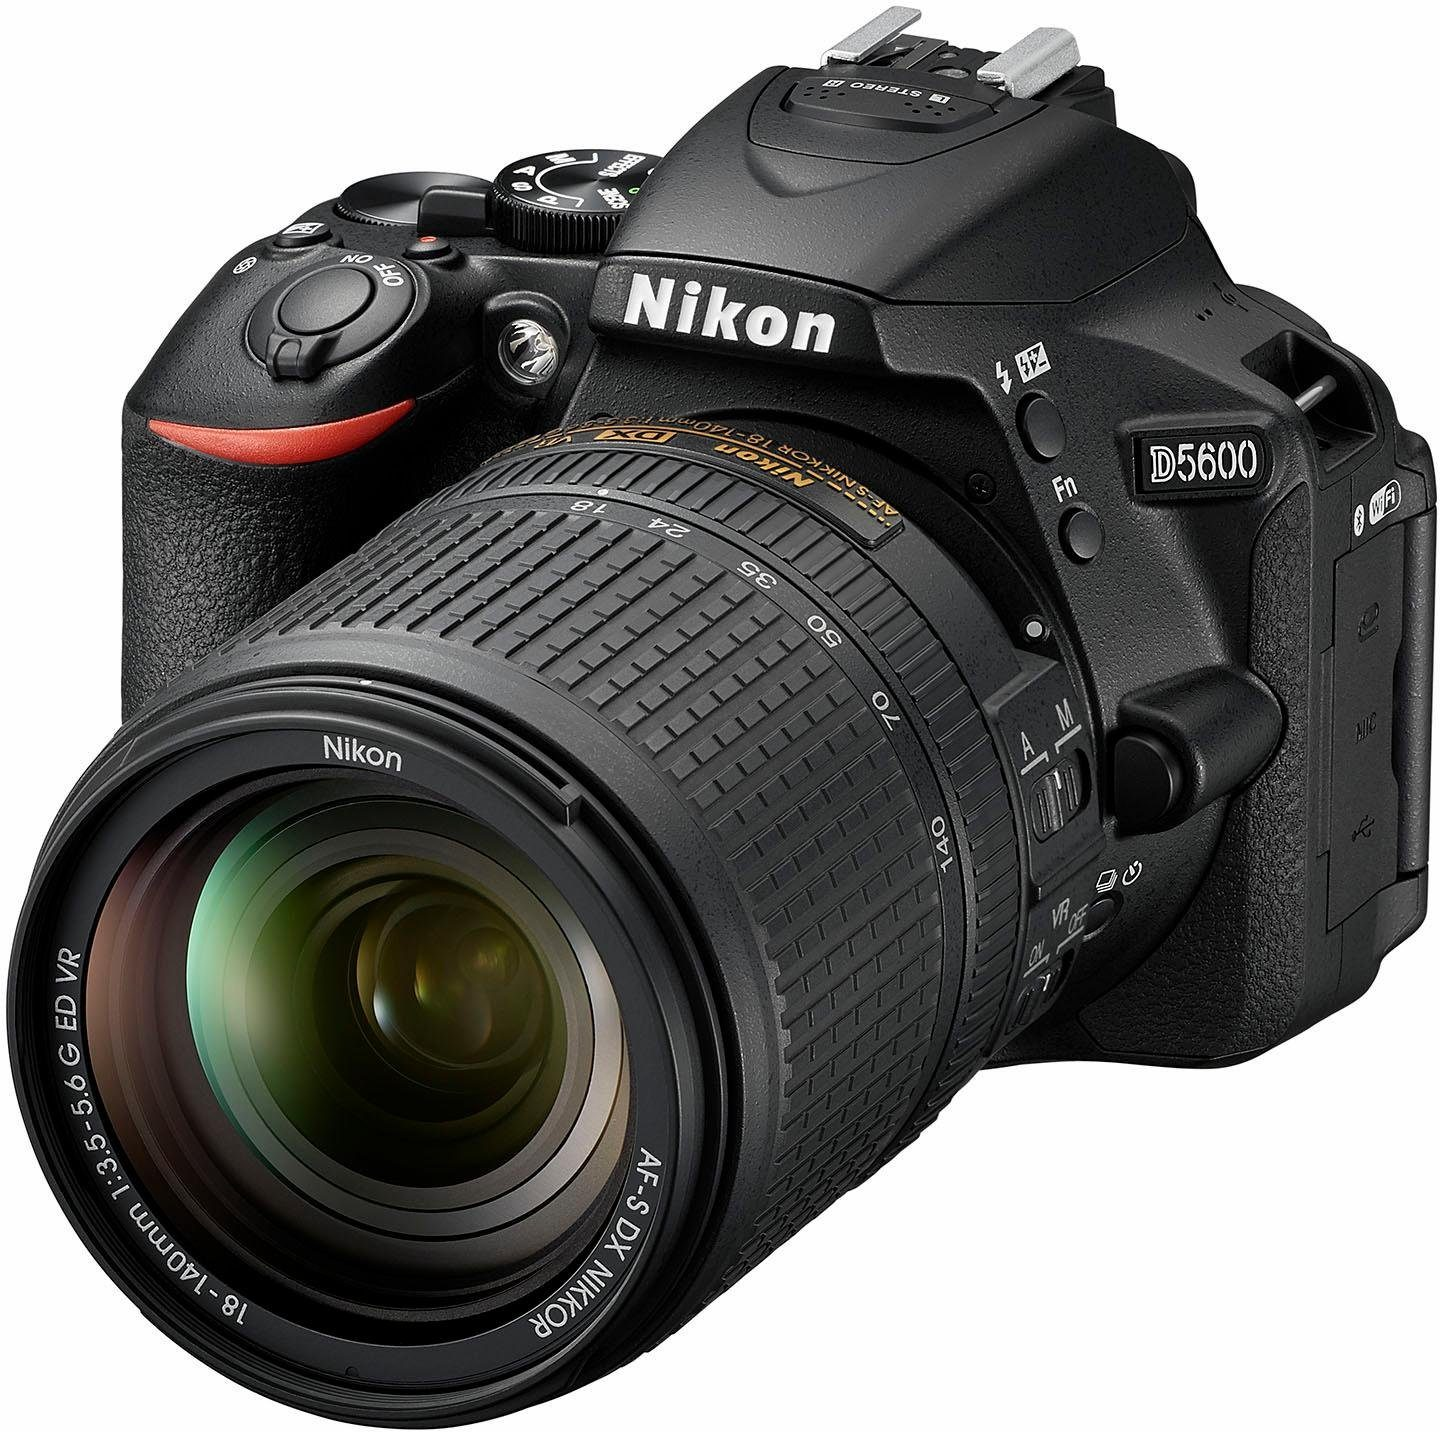 Nikon »D5600 Kit« Spiegelreflexkamera (AF-S DX 18-140 VR, 24,2 MP, Bluetooth, NFC, WLAN (Wi-Fi)